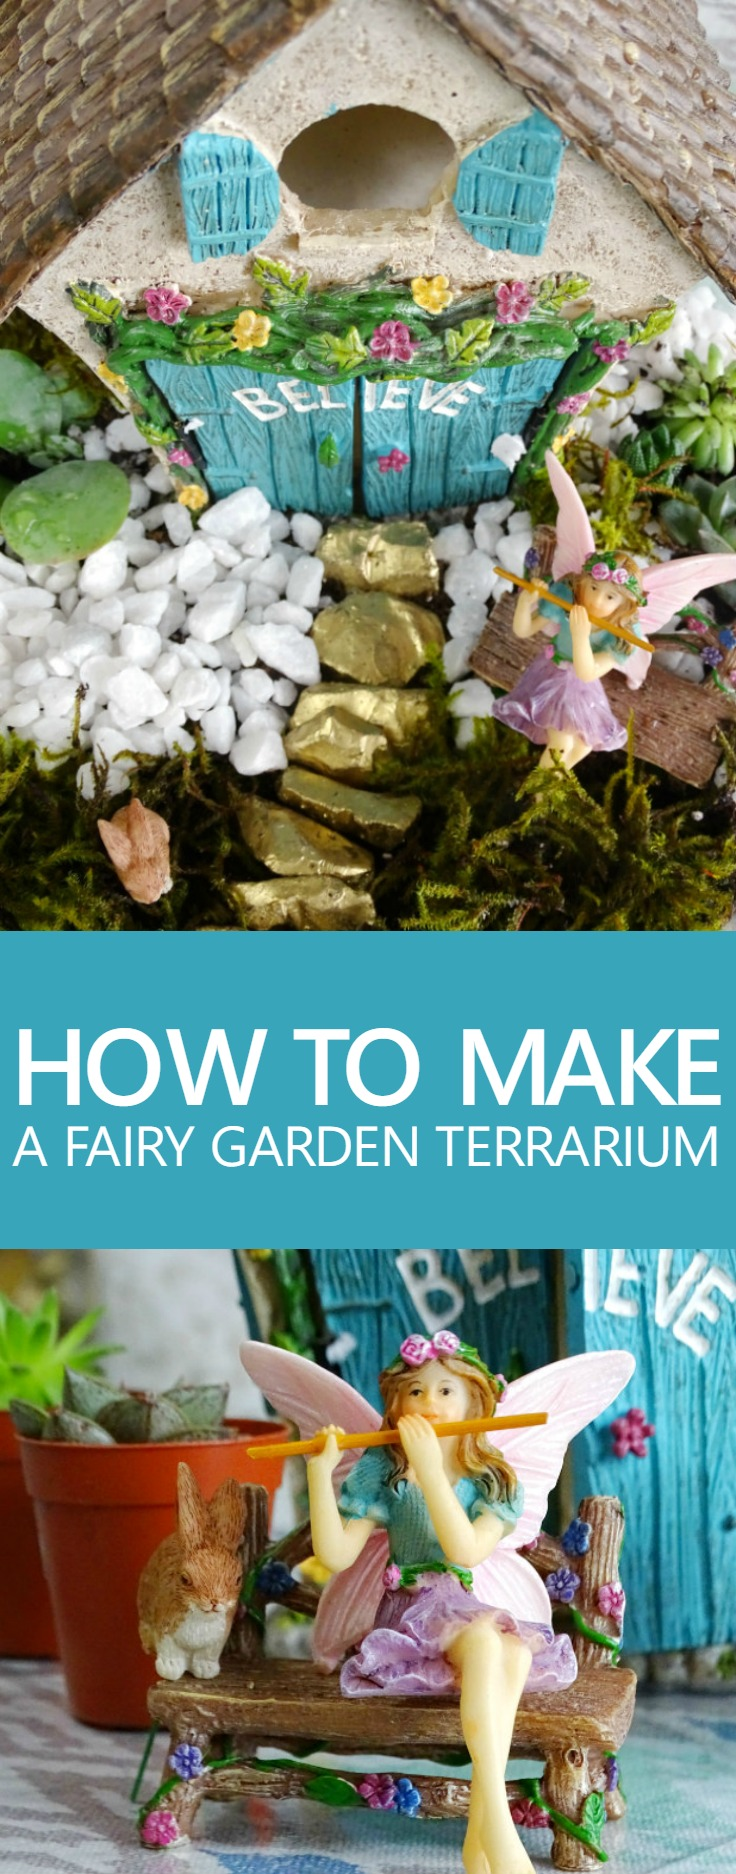 Make Your Own Fairy Garden Terrarium With This Kit Or Set It Up Outside.  Either Way, This Fairy Garden Is Sure To Add A Whimsical Touch To Your Home  And ...